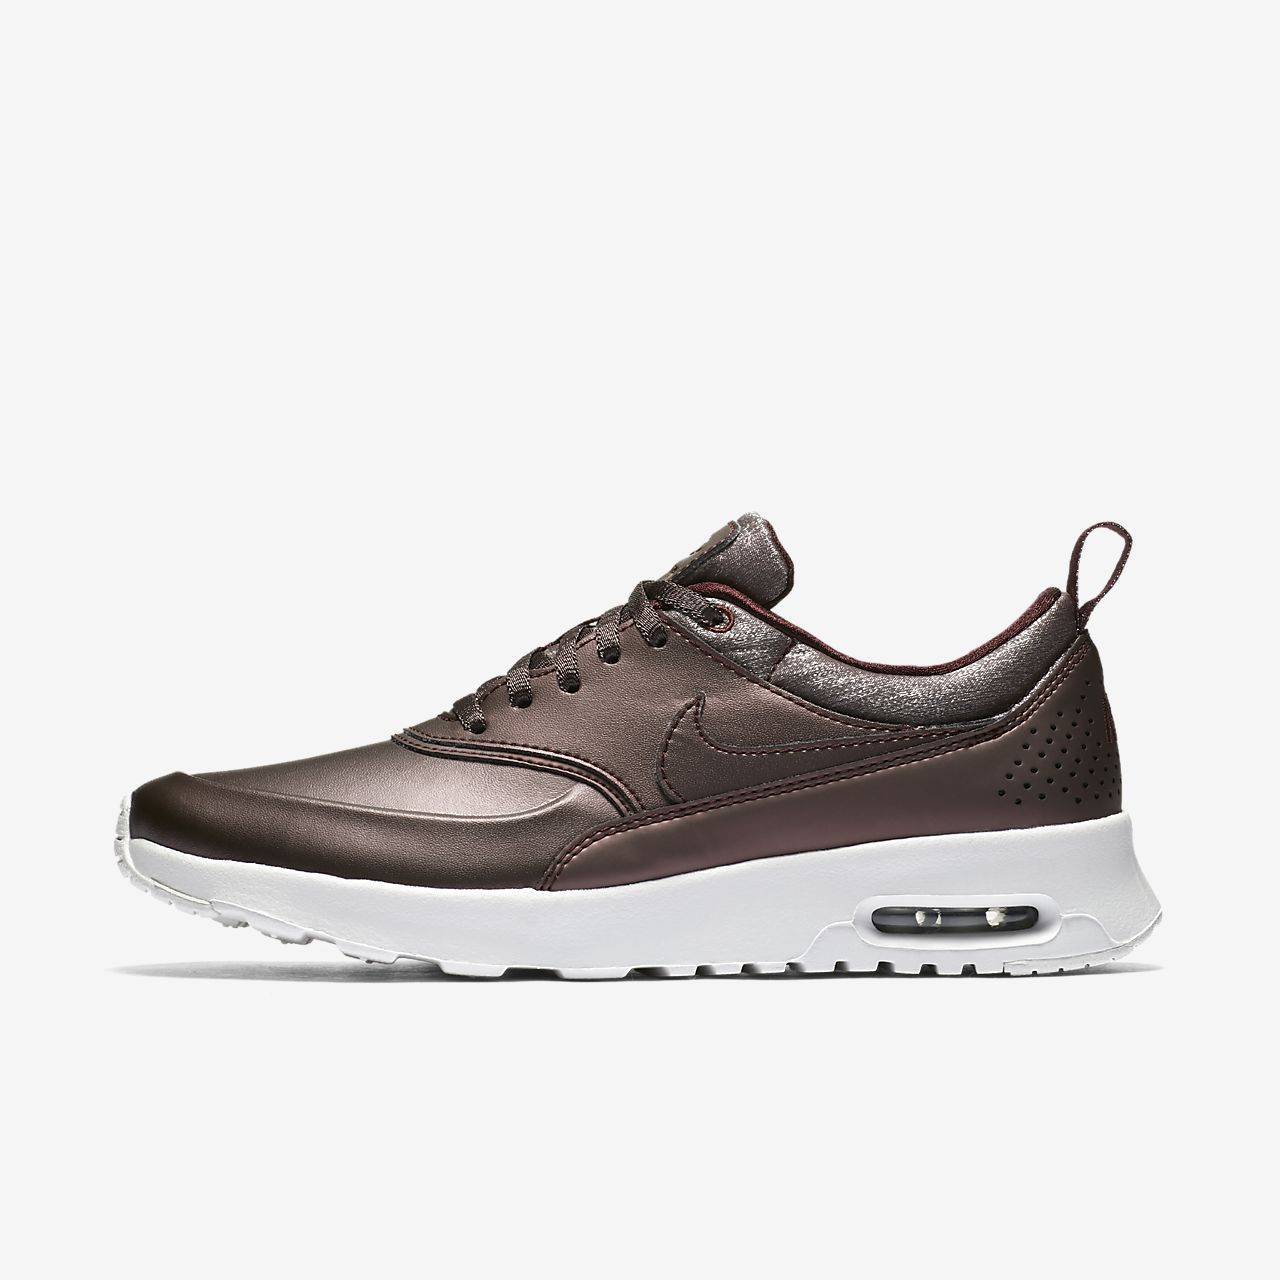 ... Nike Air Max Thea Premium Women's Shoe